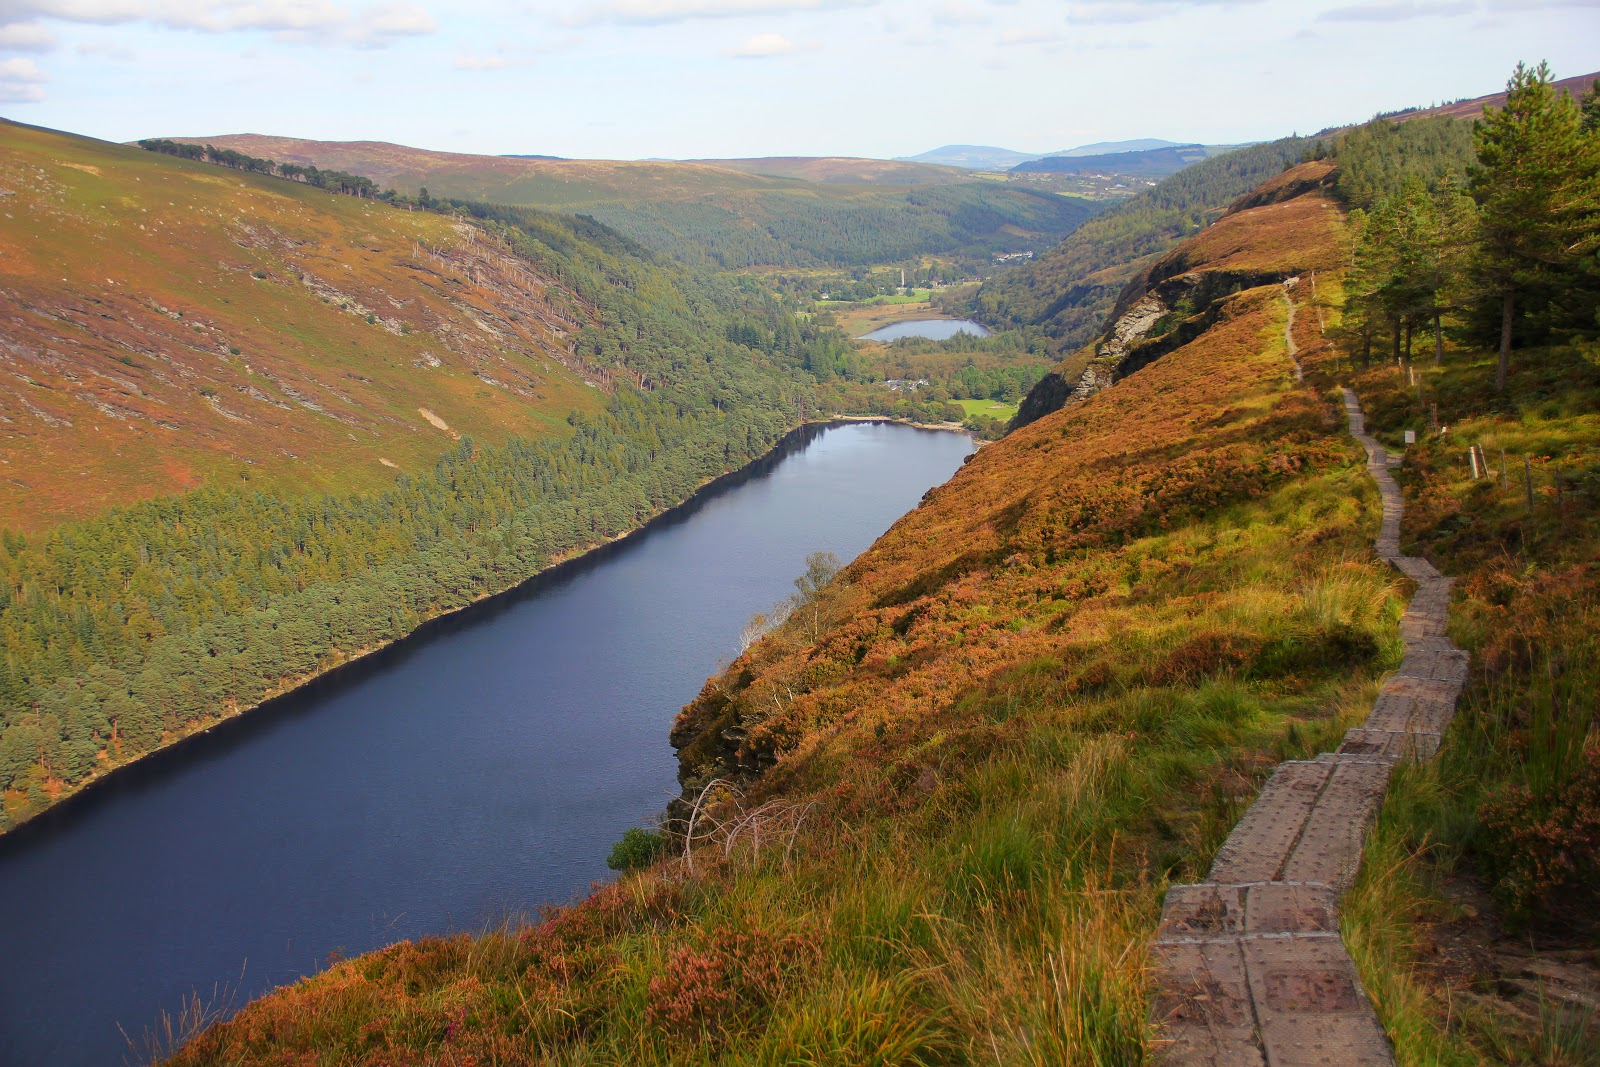 Wicklow_Mountains_National_Park_Glendalough_Valley_06.JPG